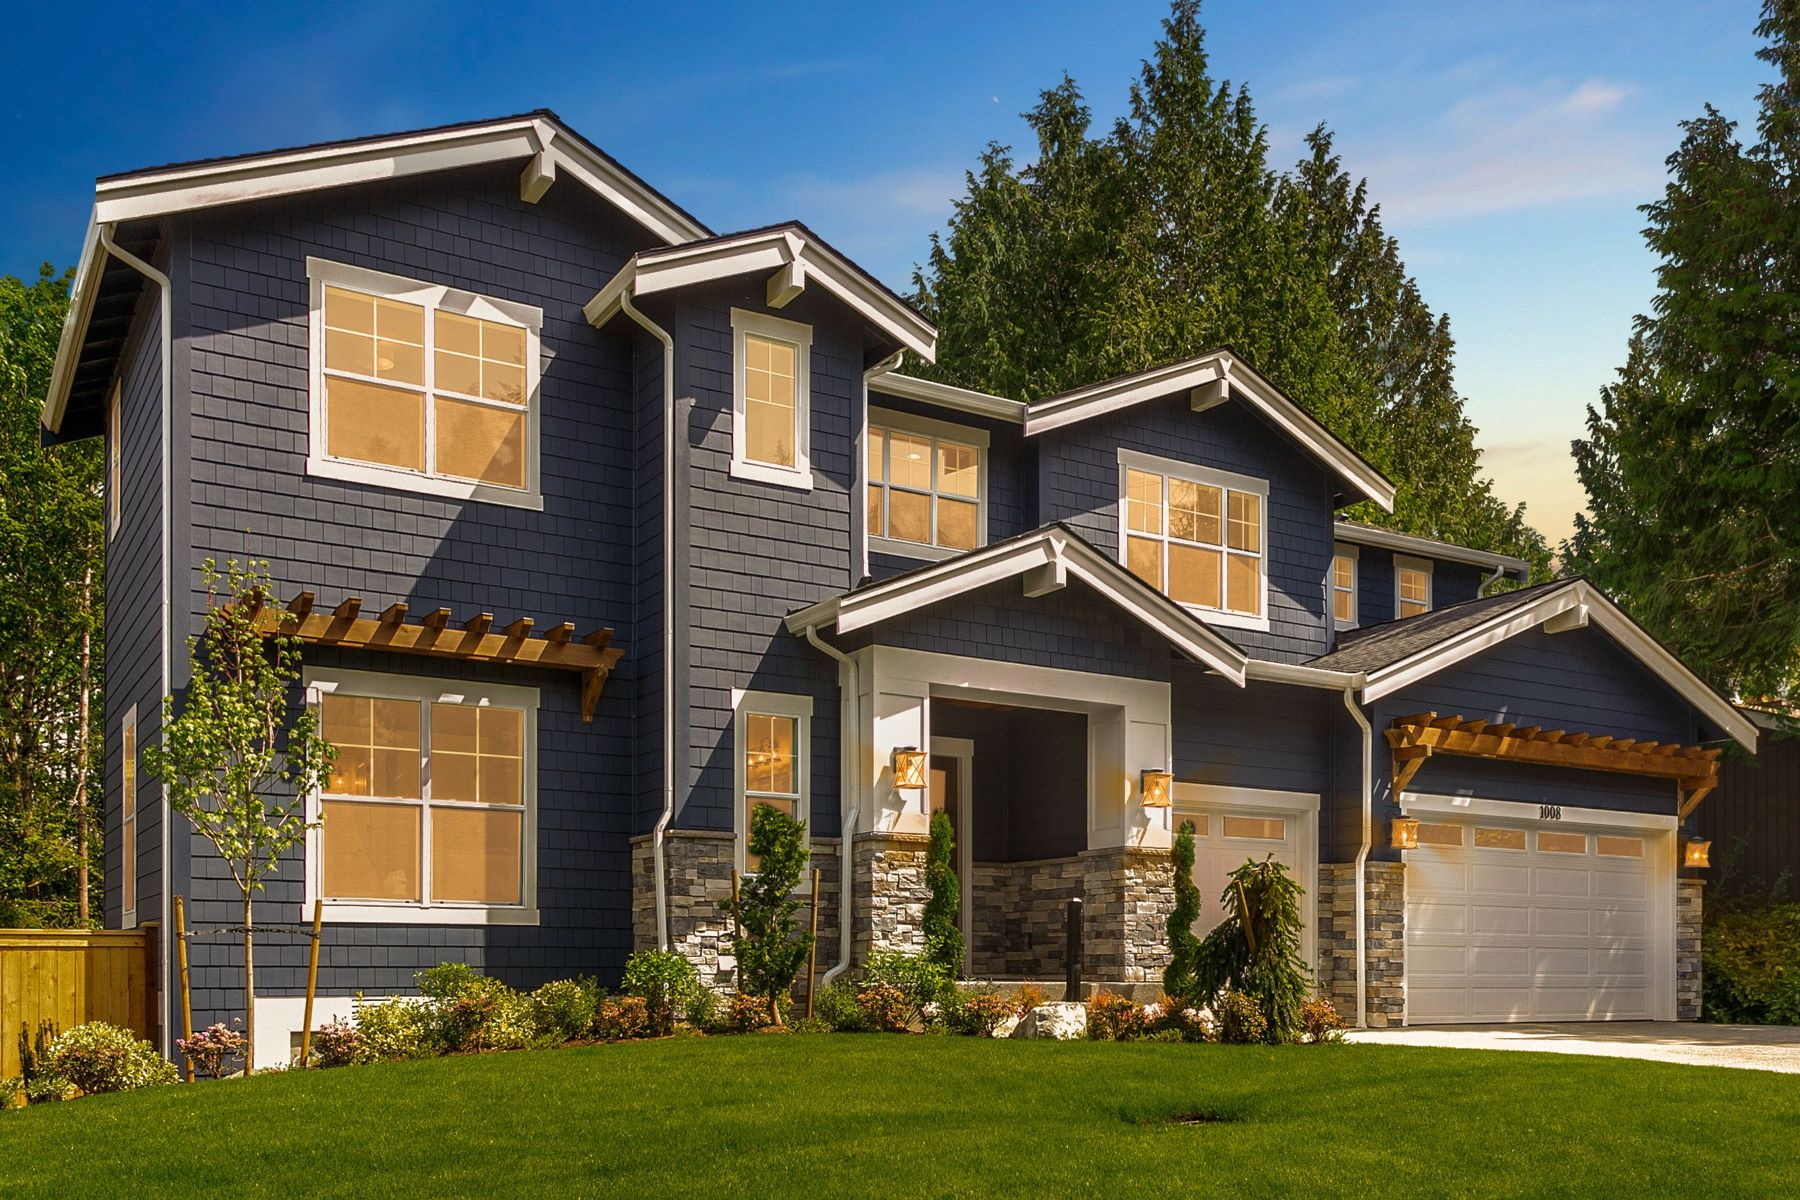 Single Family Homes for Sale at 1008 102nd Place SE, Bellevue, WA 98004 1008 102nd Place SE Bellevue, Washington 98004 United States